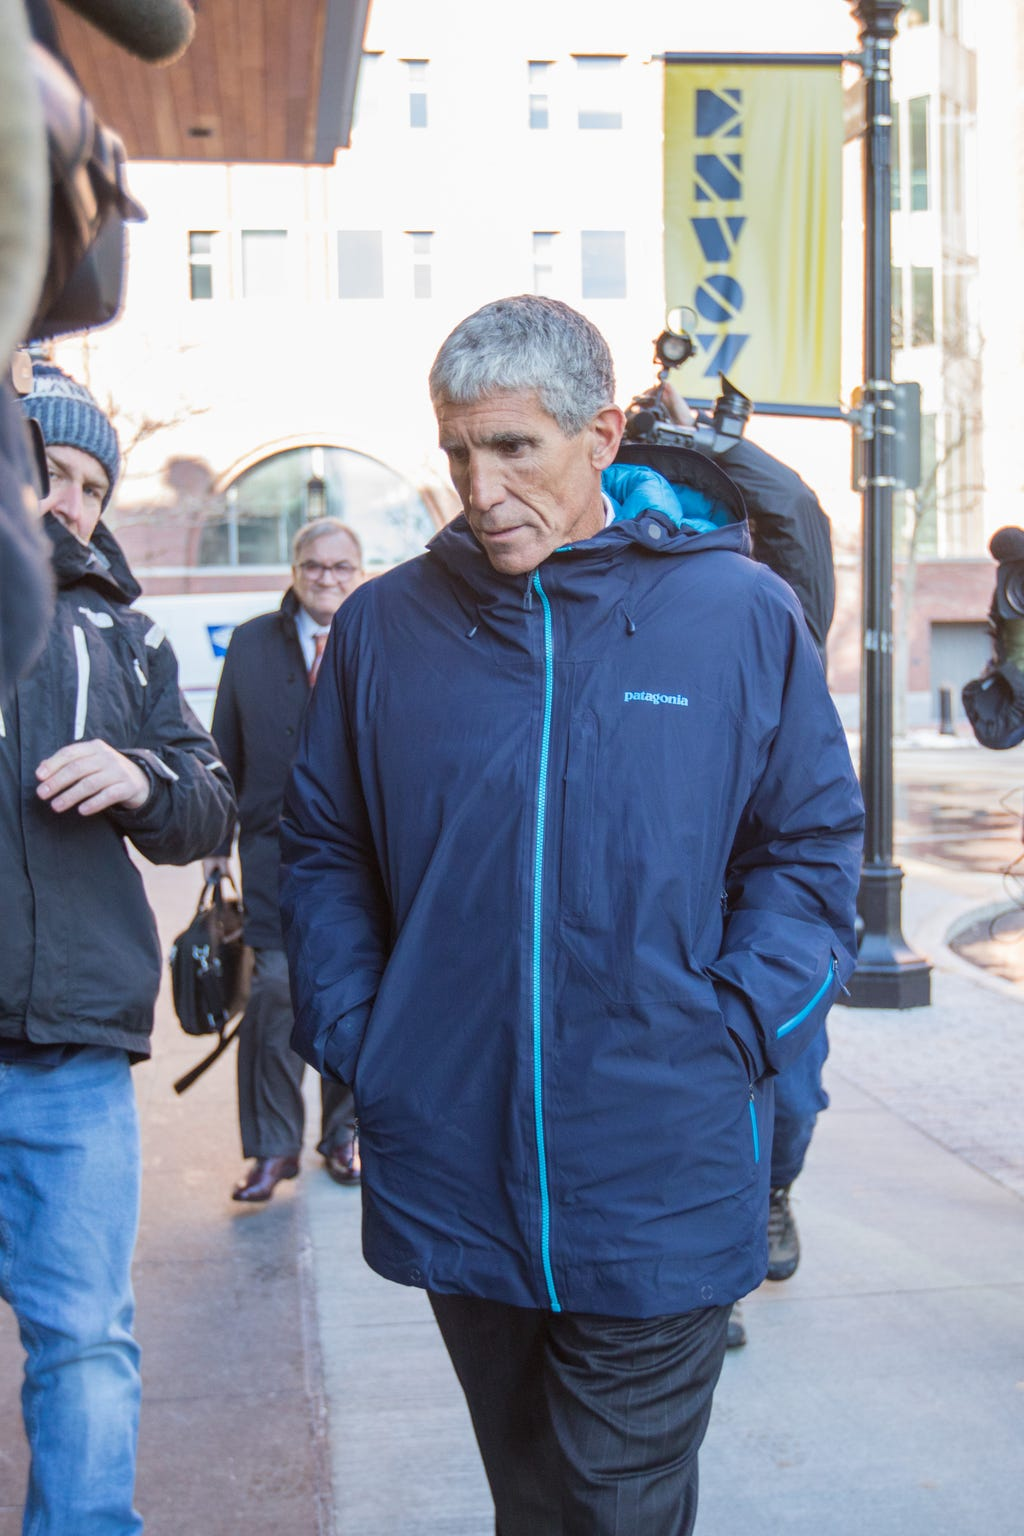 """William """"Rick"""" Singer leaves Boston Federal Court after being charged with racketeering conspiracy, money laundering conspiracy, conspiracy to defraud the United States, and obstruction of justice on March 12, 2019 in Boston, Massachusetts."""